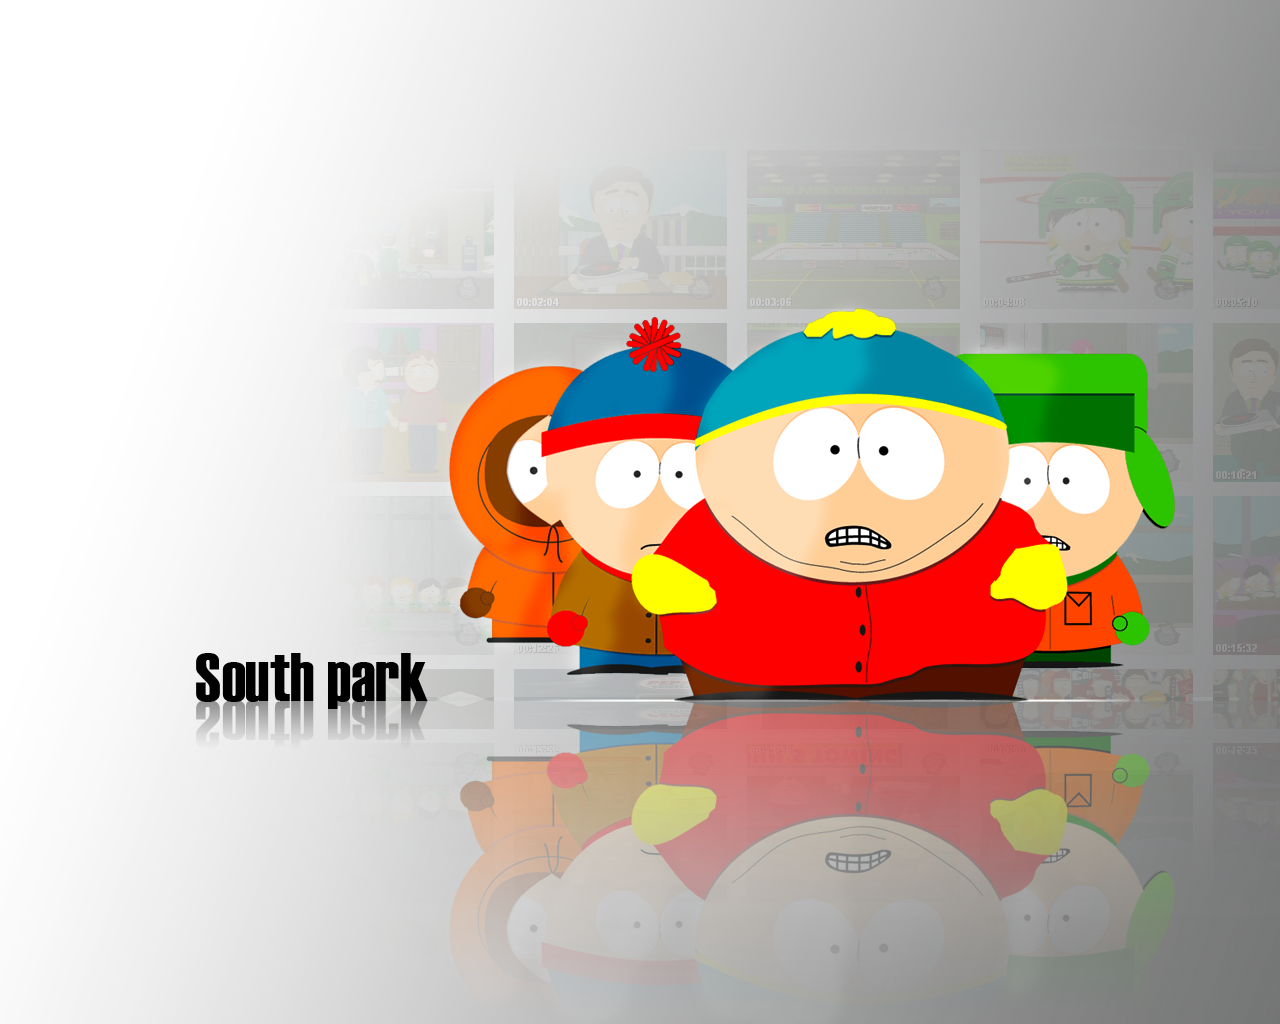 South park phone wallpaper wallpapersafari - South park wallpaper butters ...